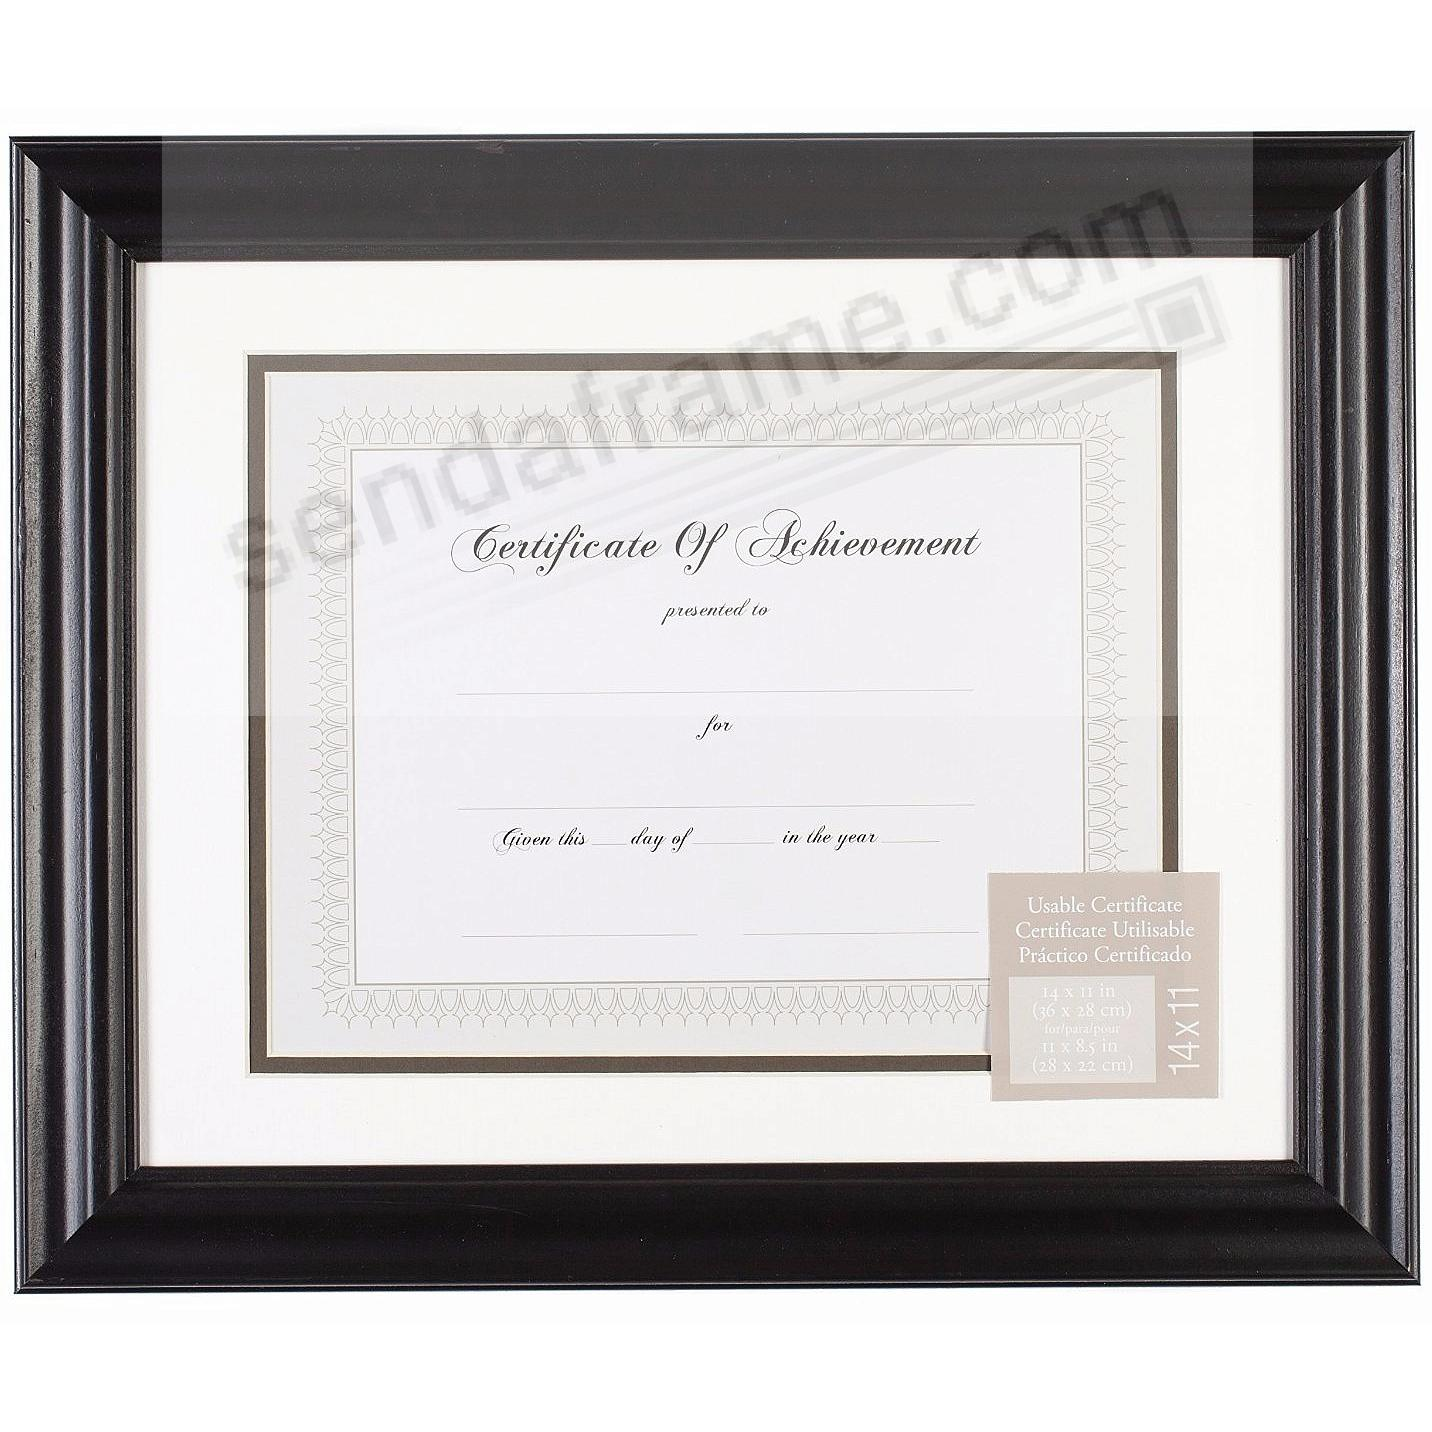 SATIN BLACK 14x11/11x8½ Certificate frame by Gallery Solutions®